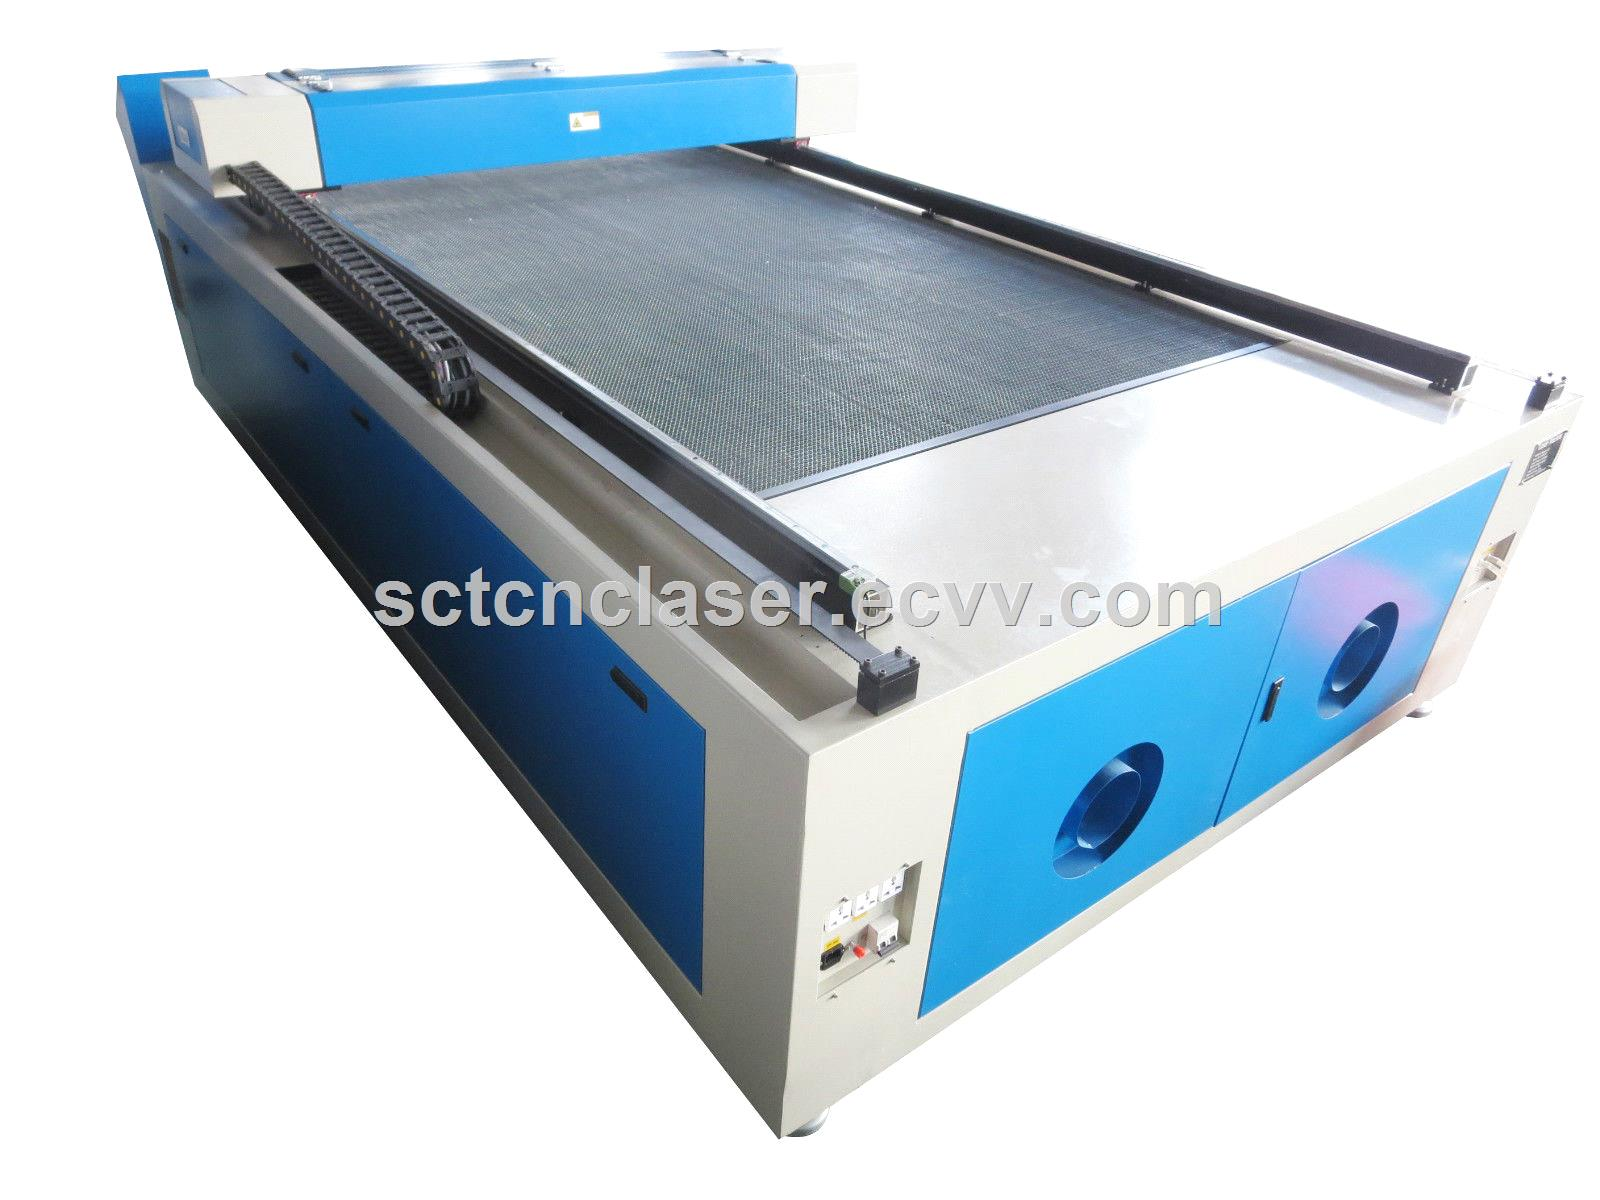 130W 1325 CNC CO2 Laser Engraving & Cutting Machine for Sale